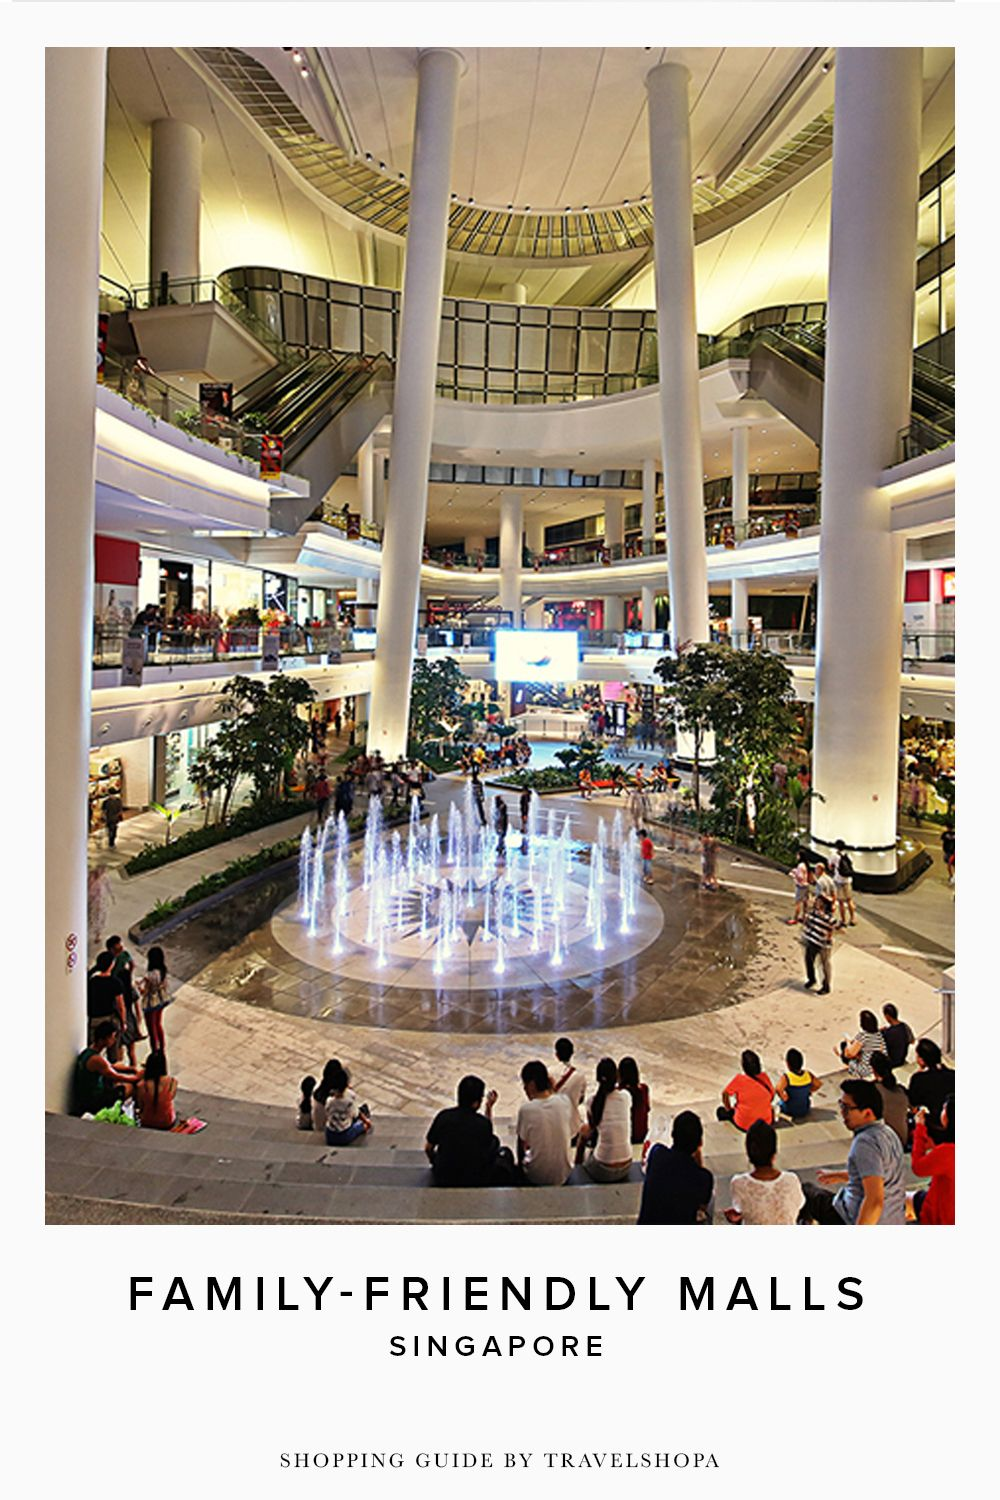 FamilyFriendly Malls in Singapore Singapore, Mall